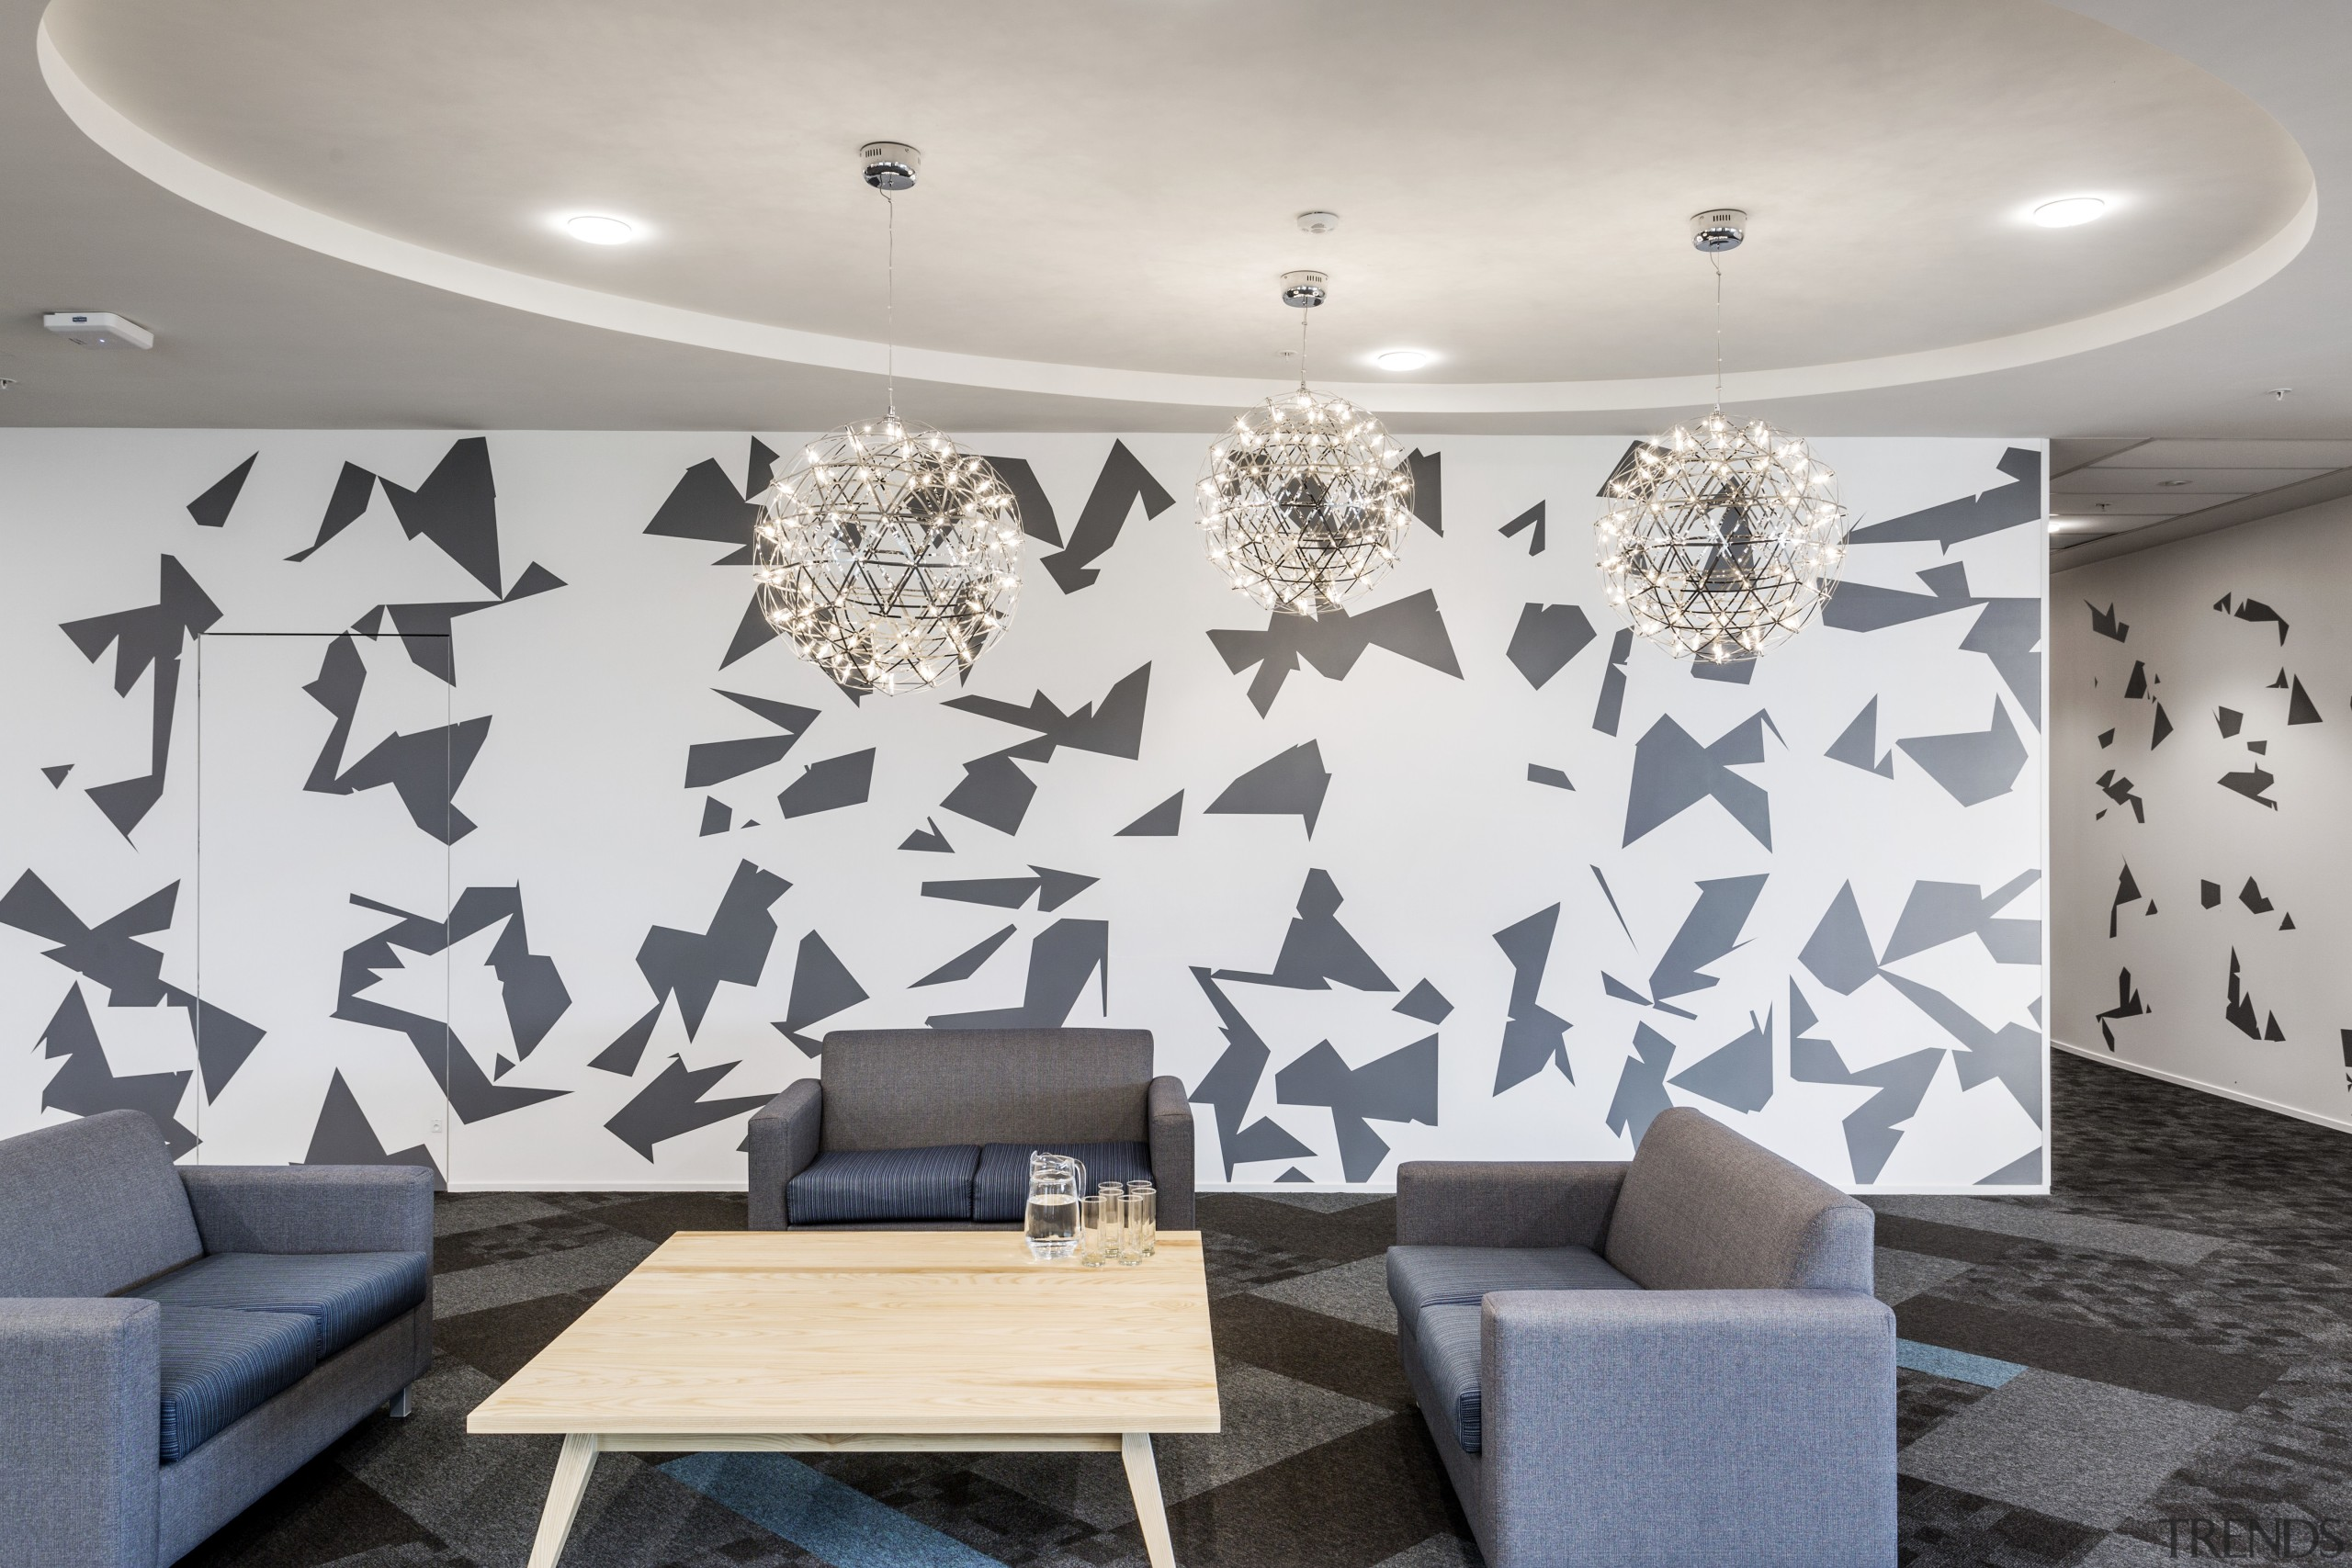 This breakout space at Datacoms new offices has ceiling, design, interior design, living room, mural, product design, room, wall, wallpaper, gray